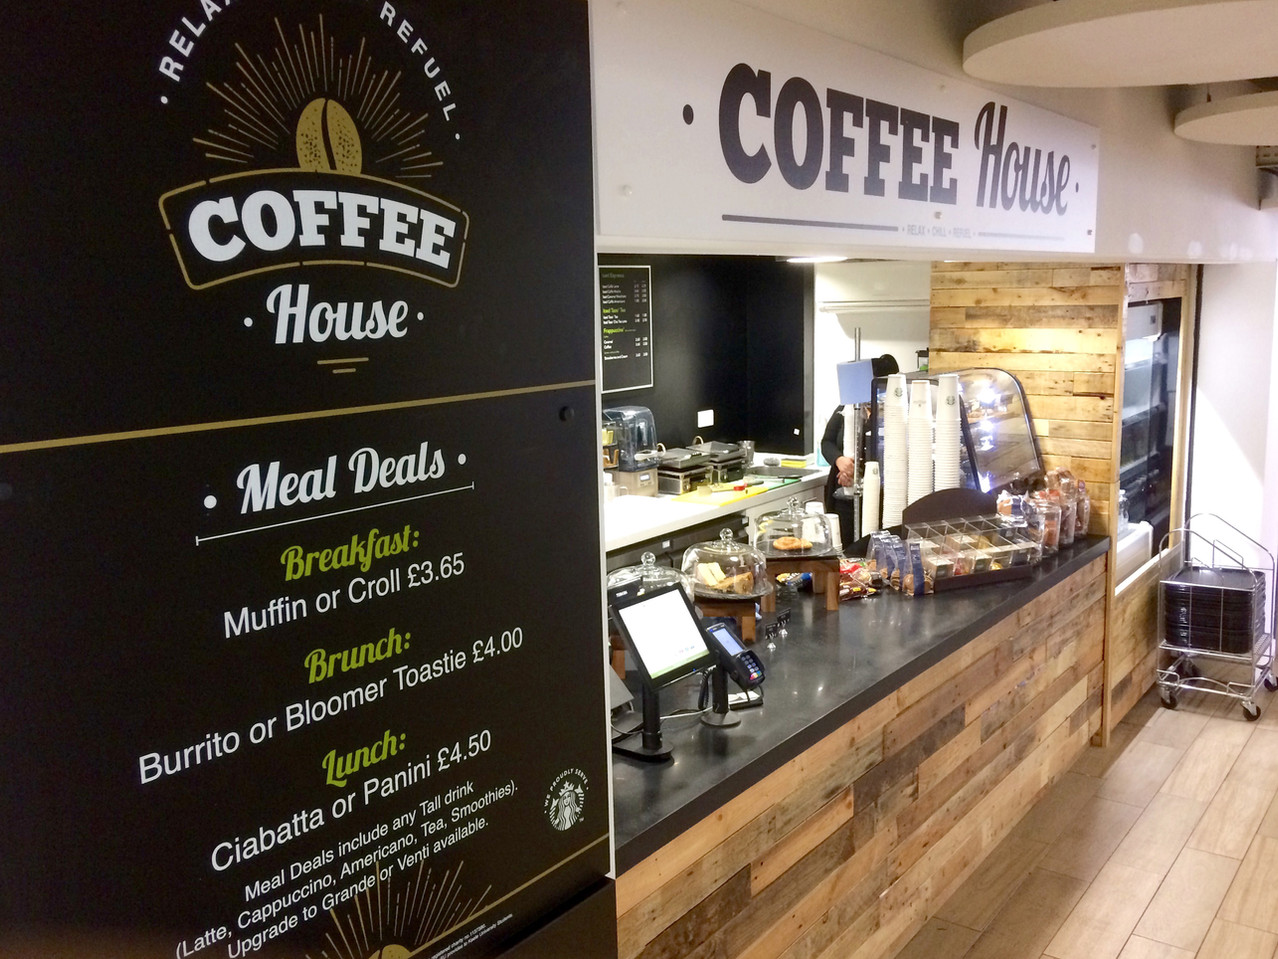 Coffee House Visual Identity - Menu & Signage